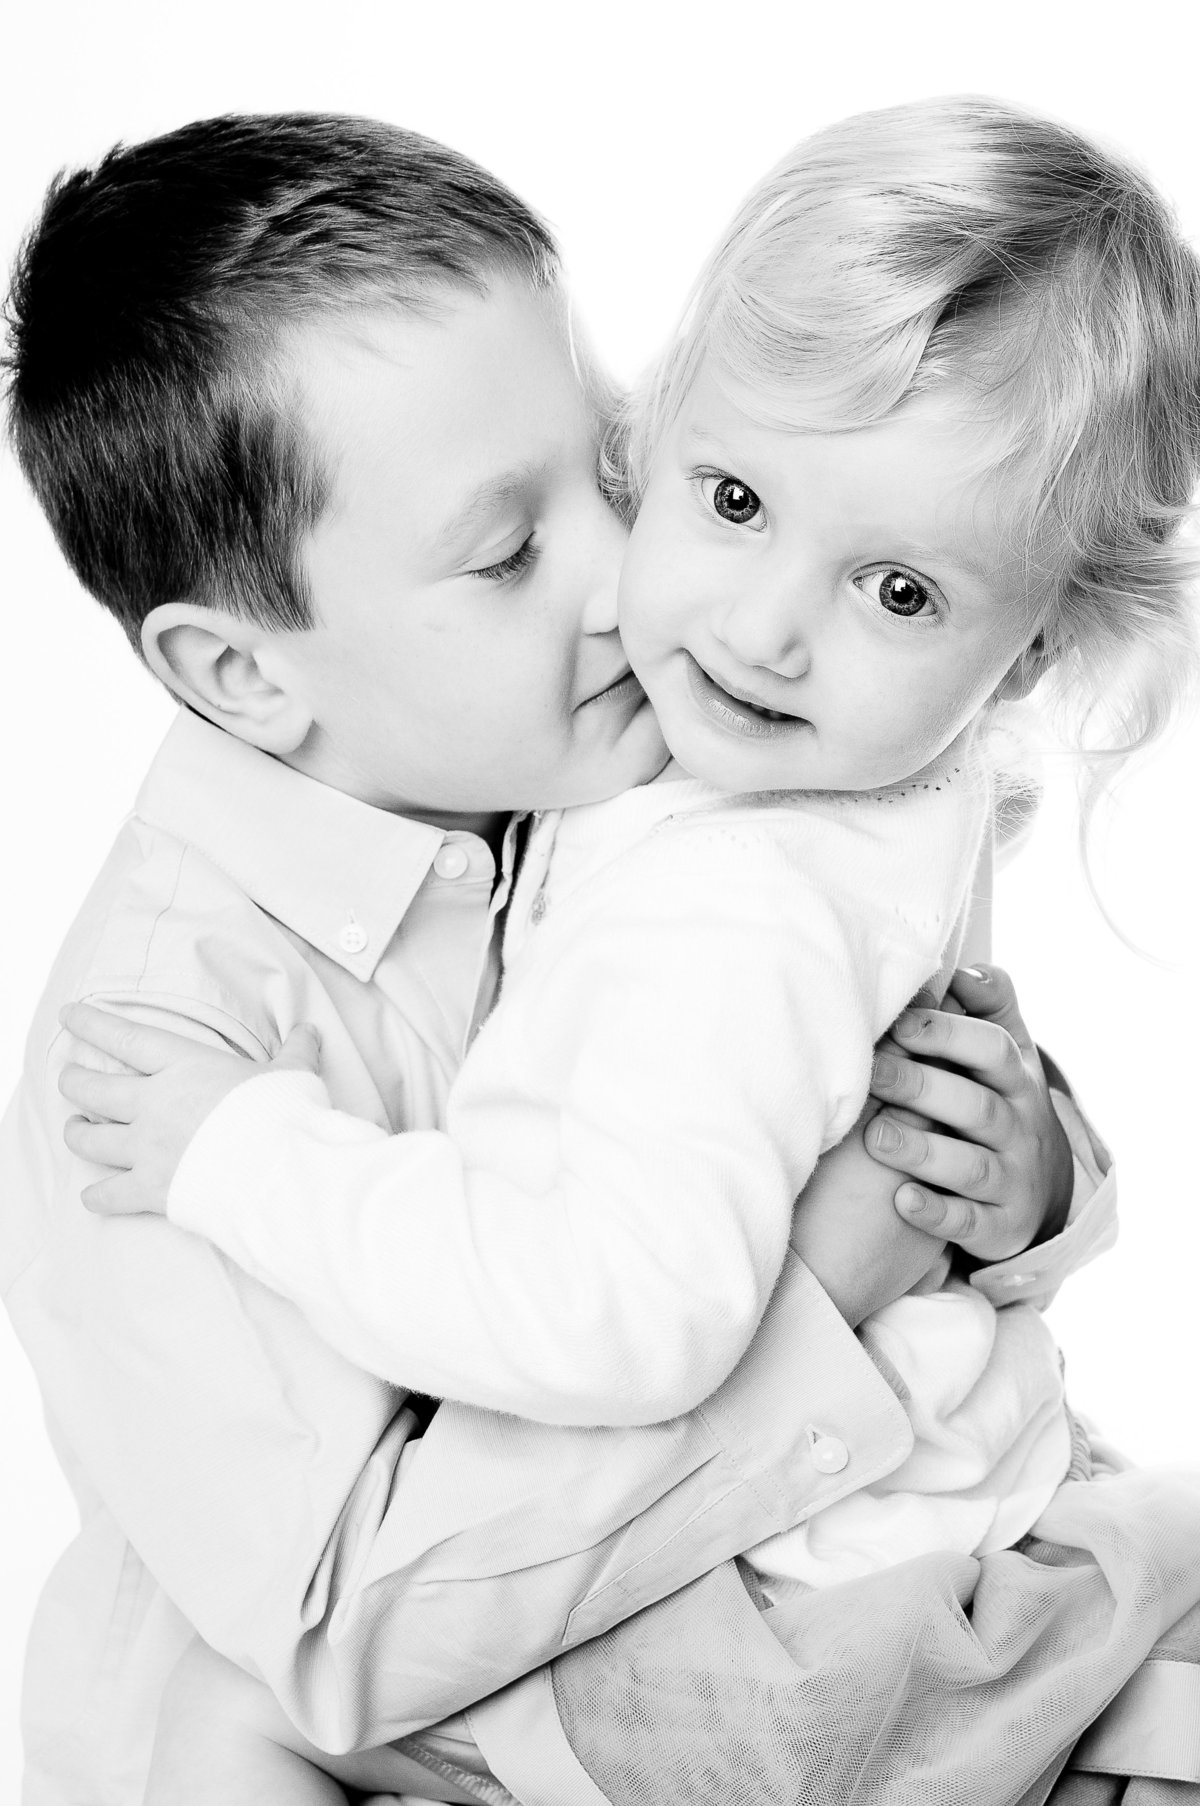 hornphotography-children-2-10